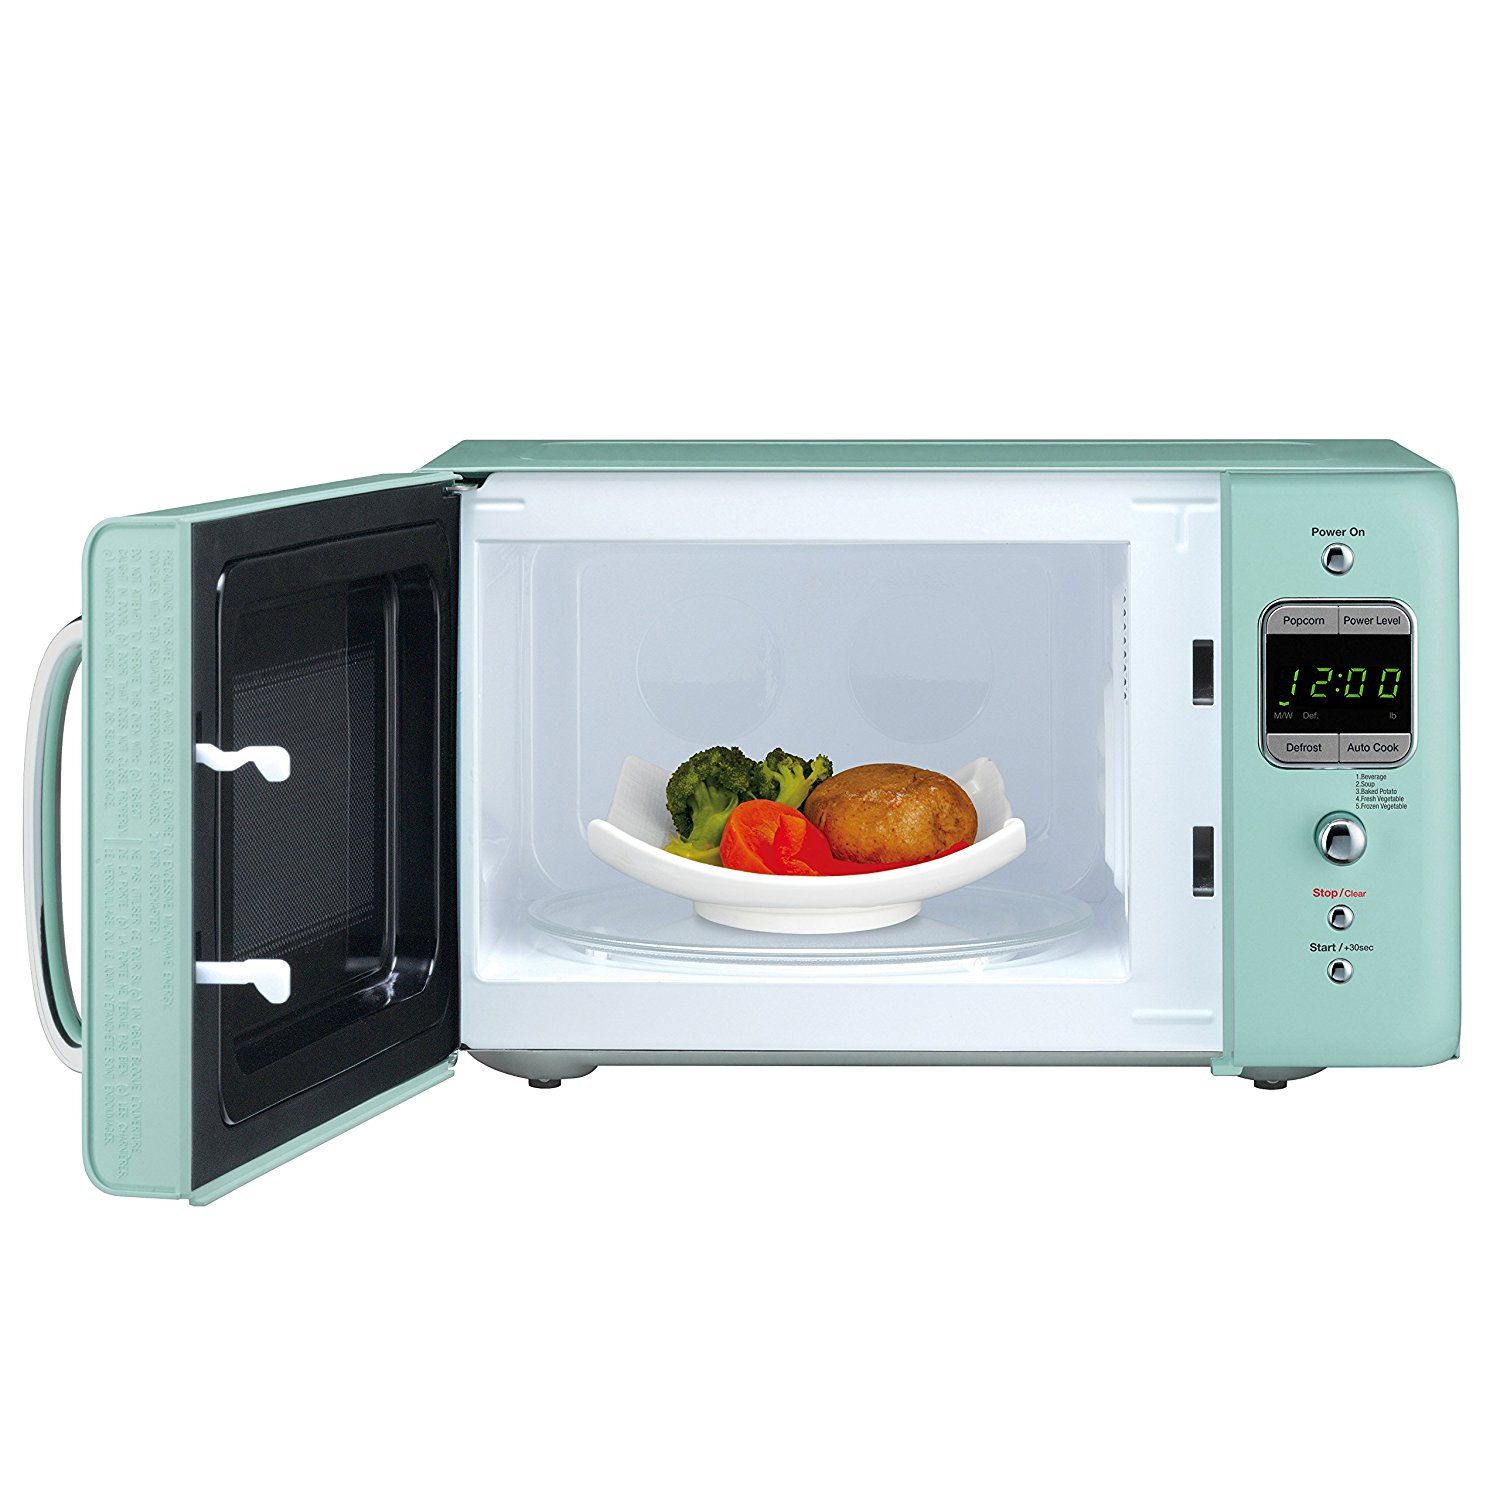 Daewoo Retro Small Compact Microwave Oven 0 7 Cu Ft Mint Green 700w New Ebay